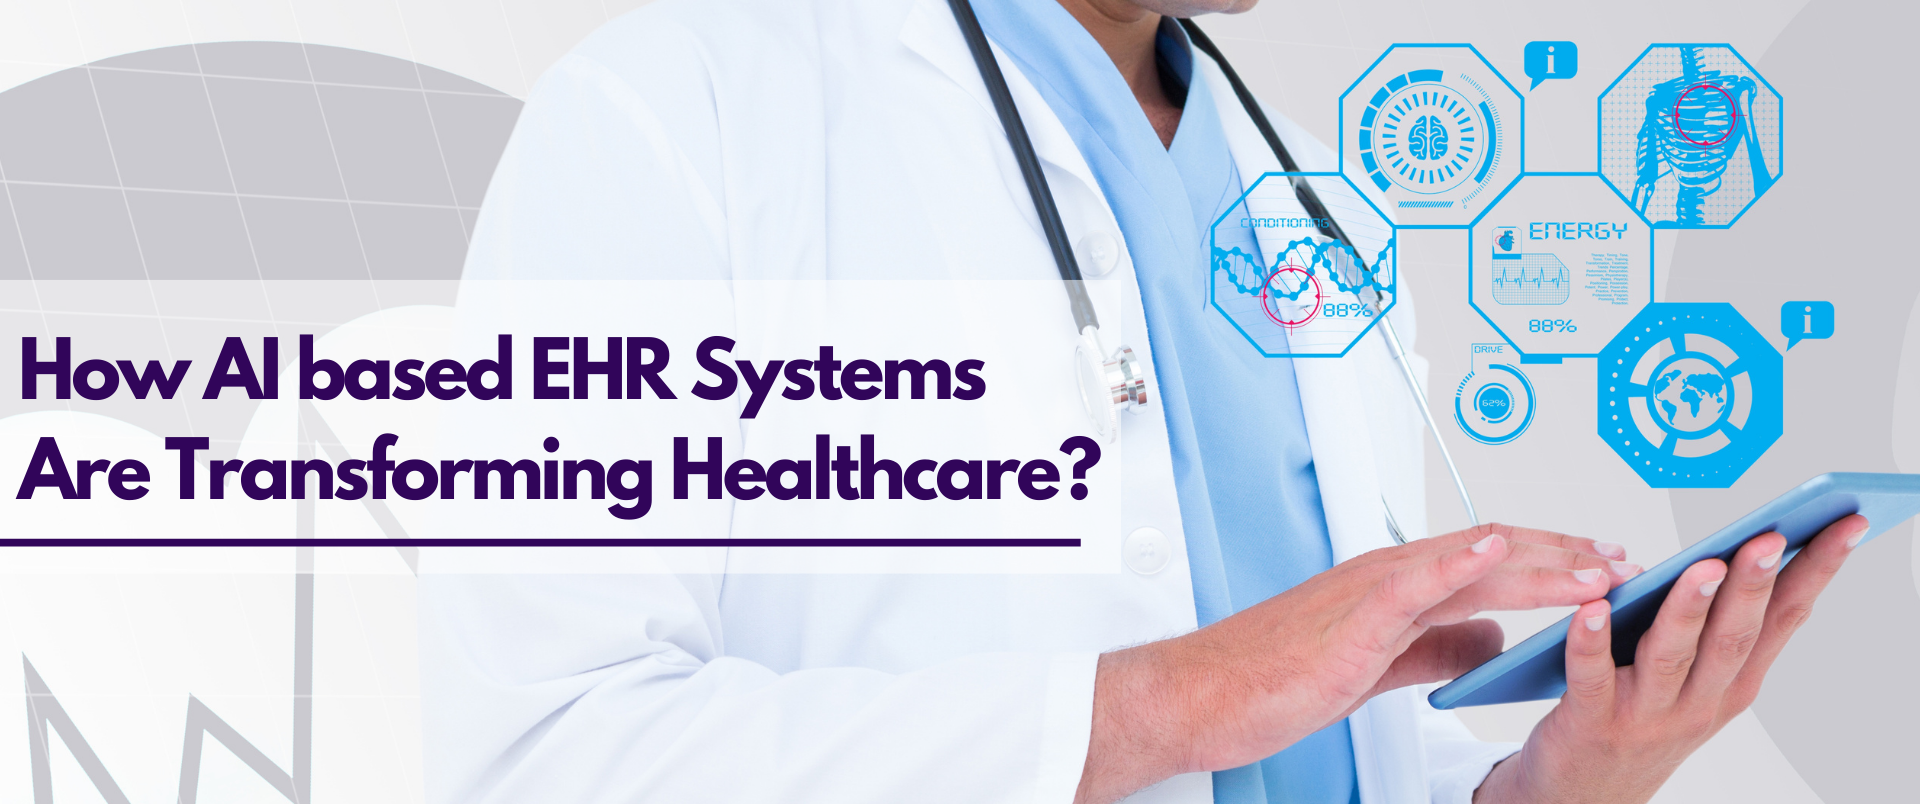 ehr-in-healthcare